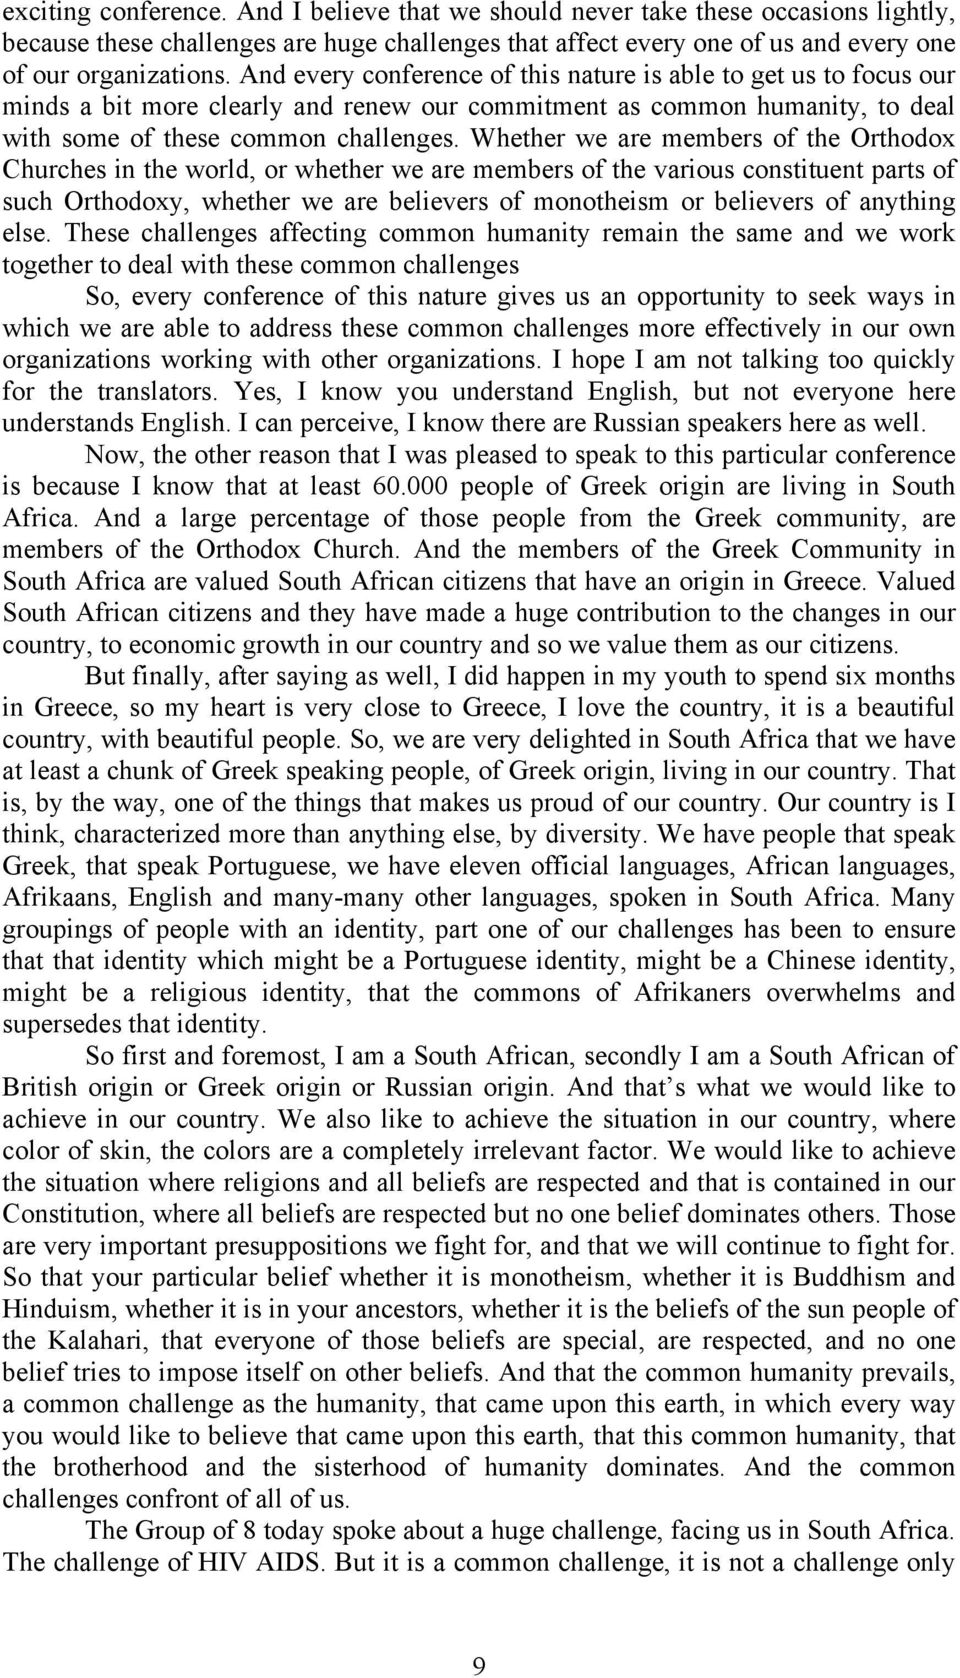 Whether we are members of the Orthodox Churches in the world, or whether we are members of the various constituent parts of such Orthodoxy, whether we are believers of monotheism or believers of